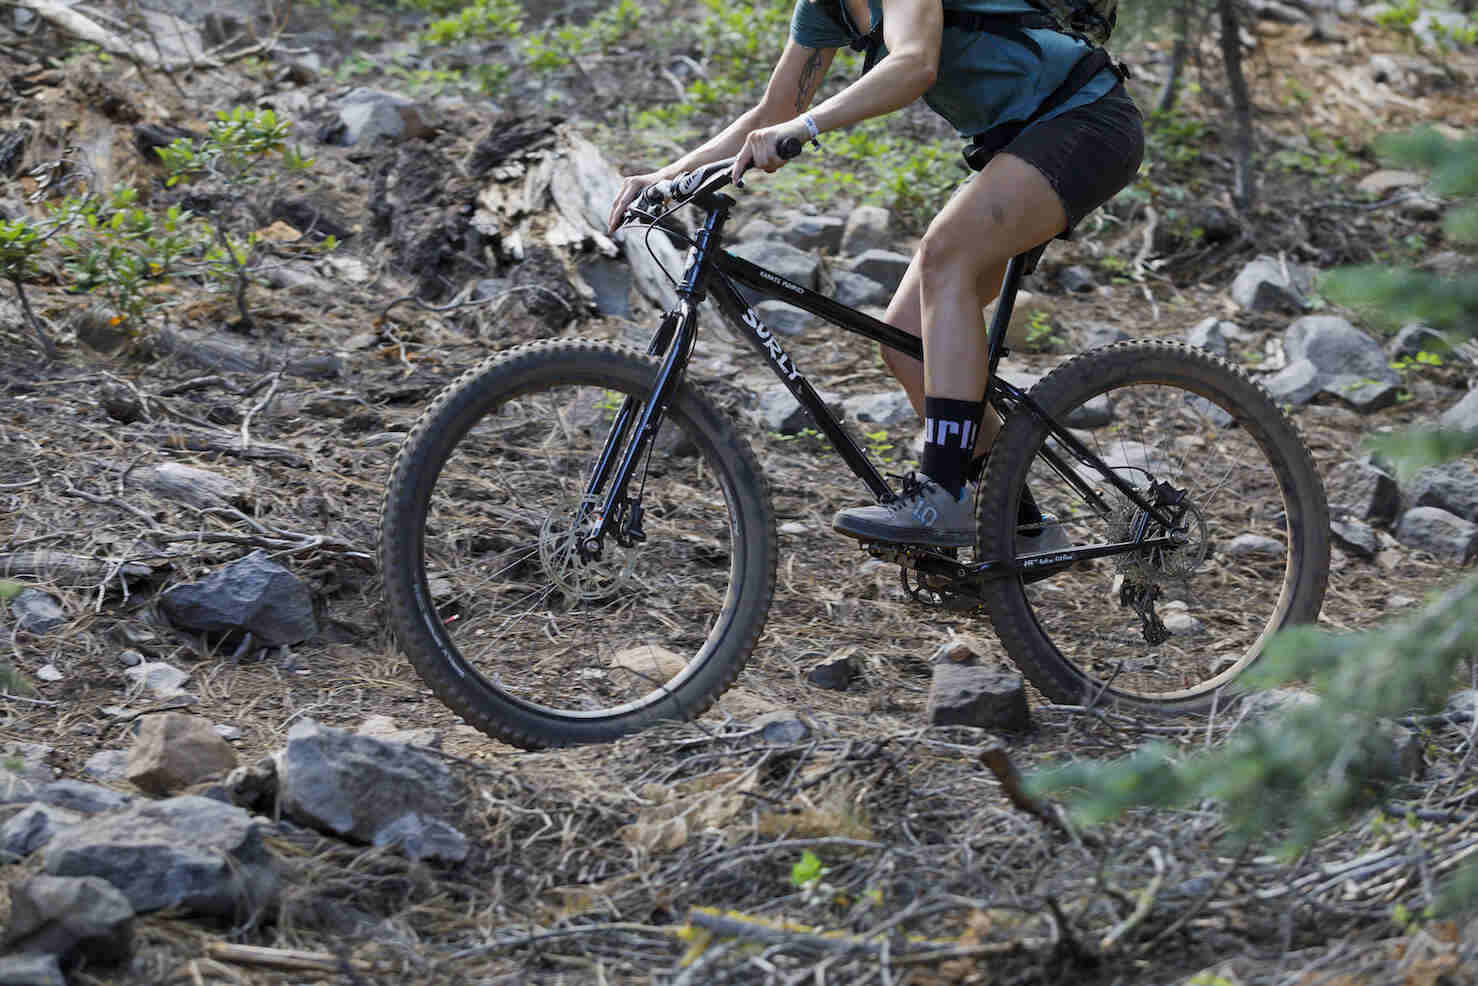 Left side view of a cyclist on a Surly Karate Monkey bike, black, across a rocky hill in the forest